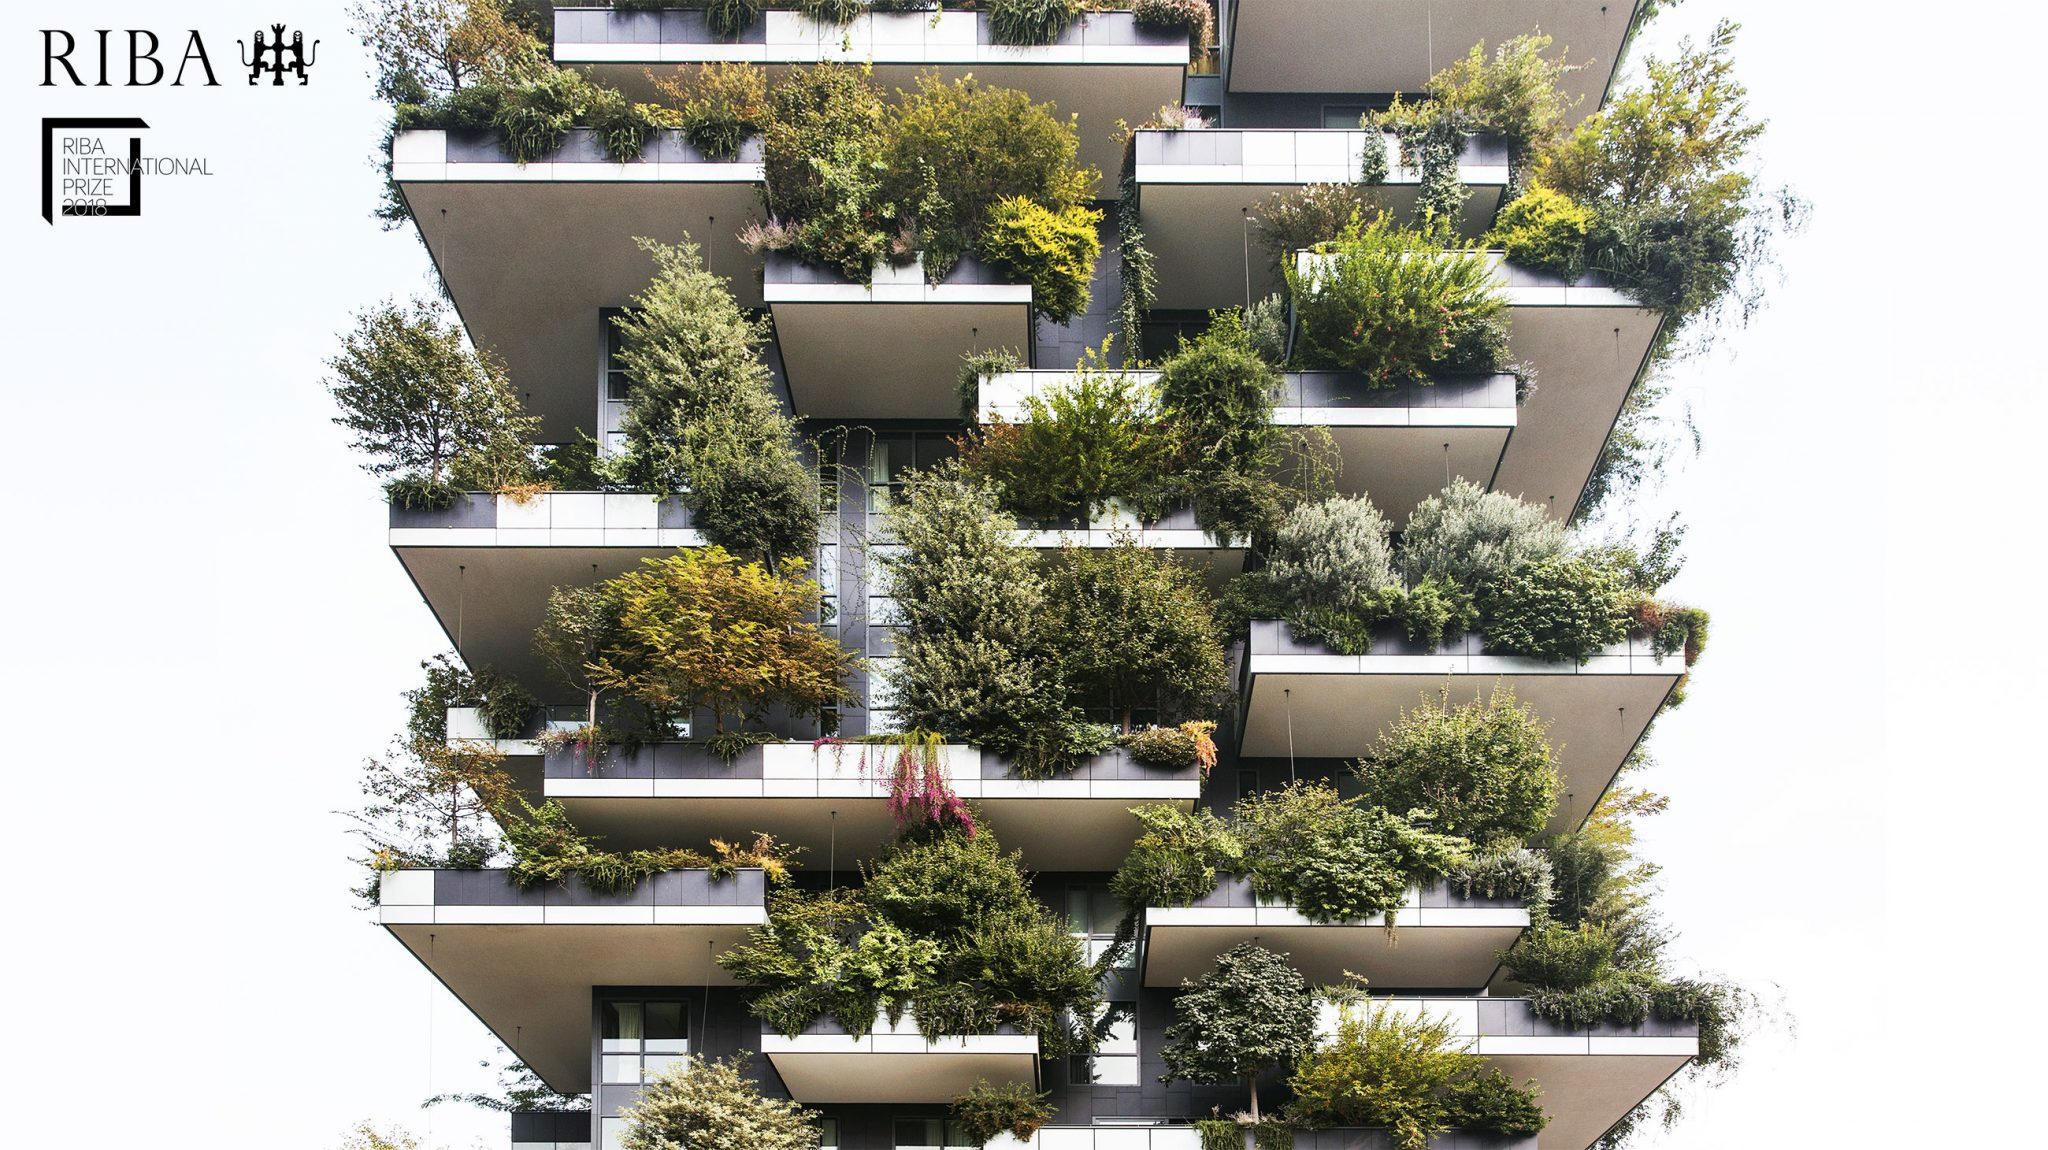 Vertical-Forest_RIBA-Awards-for-International-Excellence-&-International-Emerging-Architect